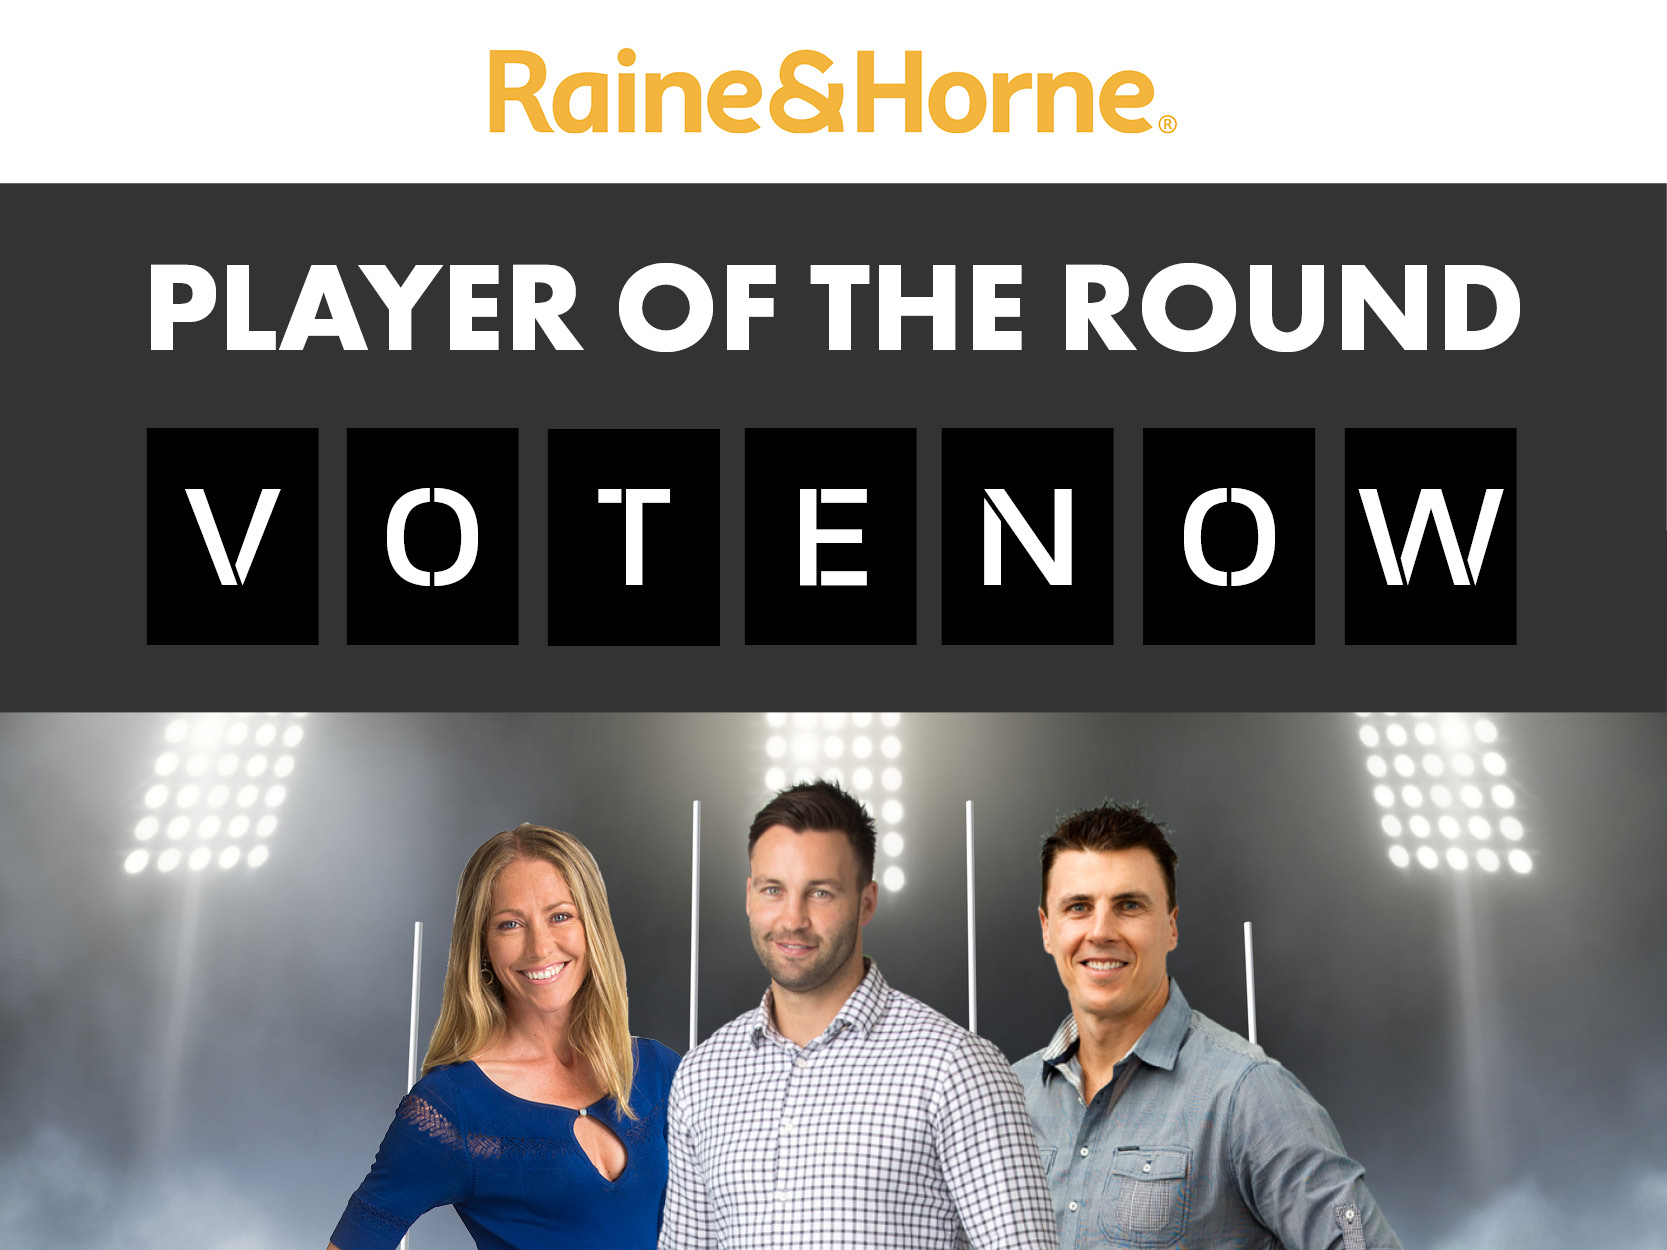 FINAL RESULTS: Raine & Horne Player of the Round